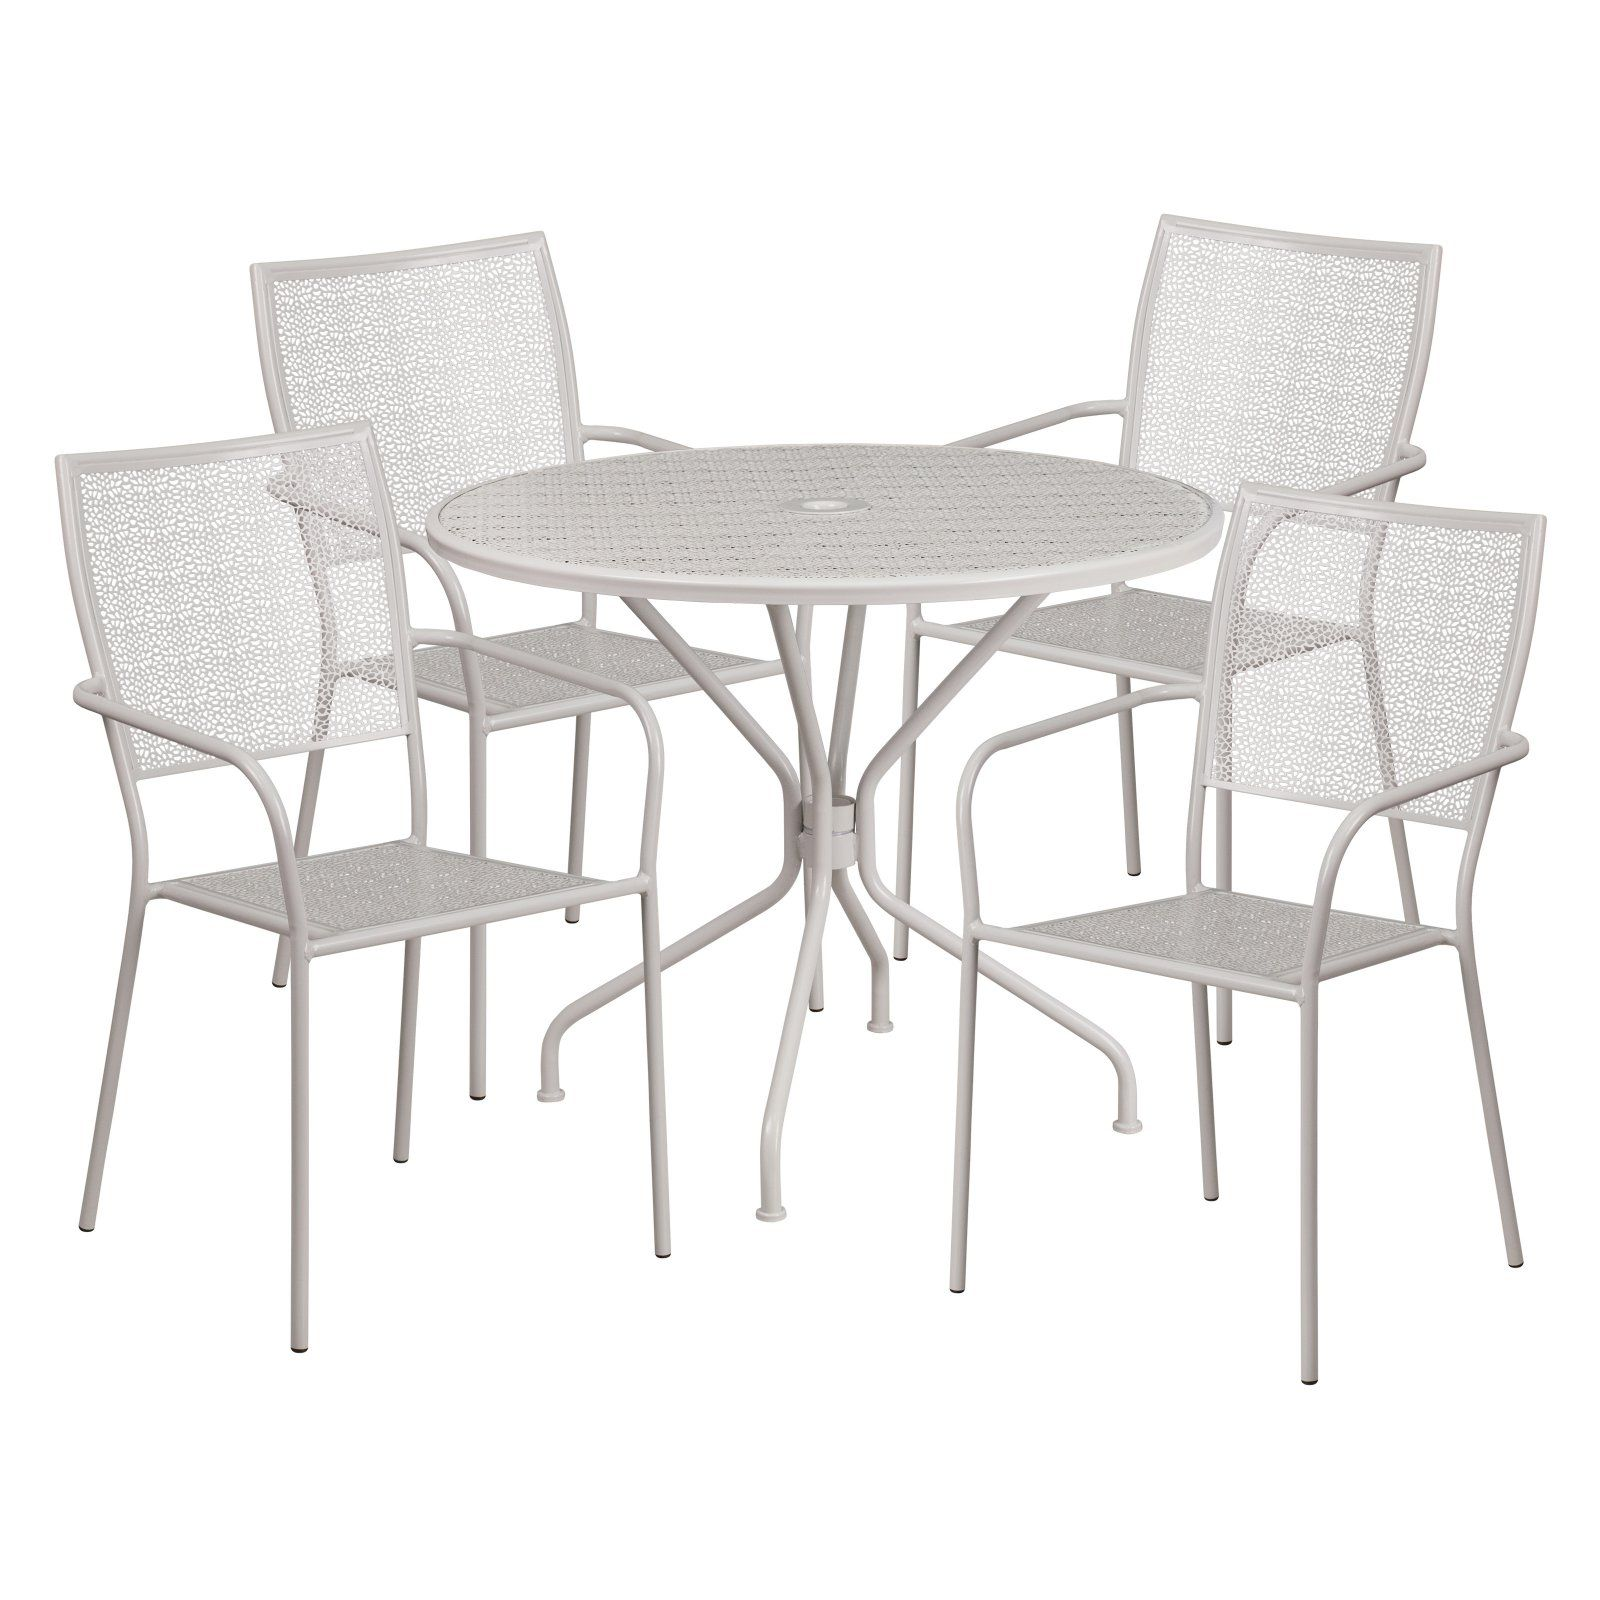 Outdoor Flash Furniture Steel Round Patio Dining Set Patio Table